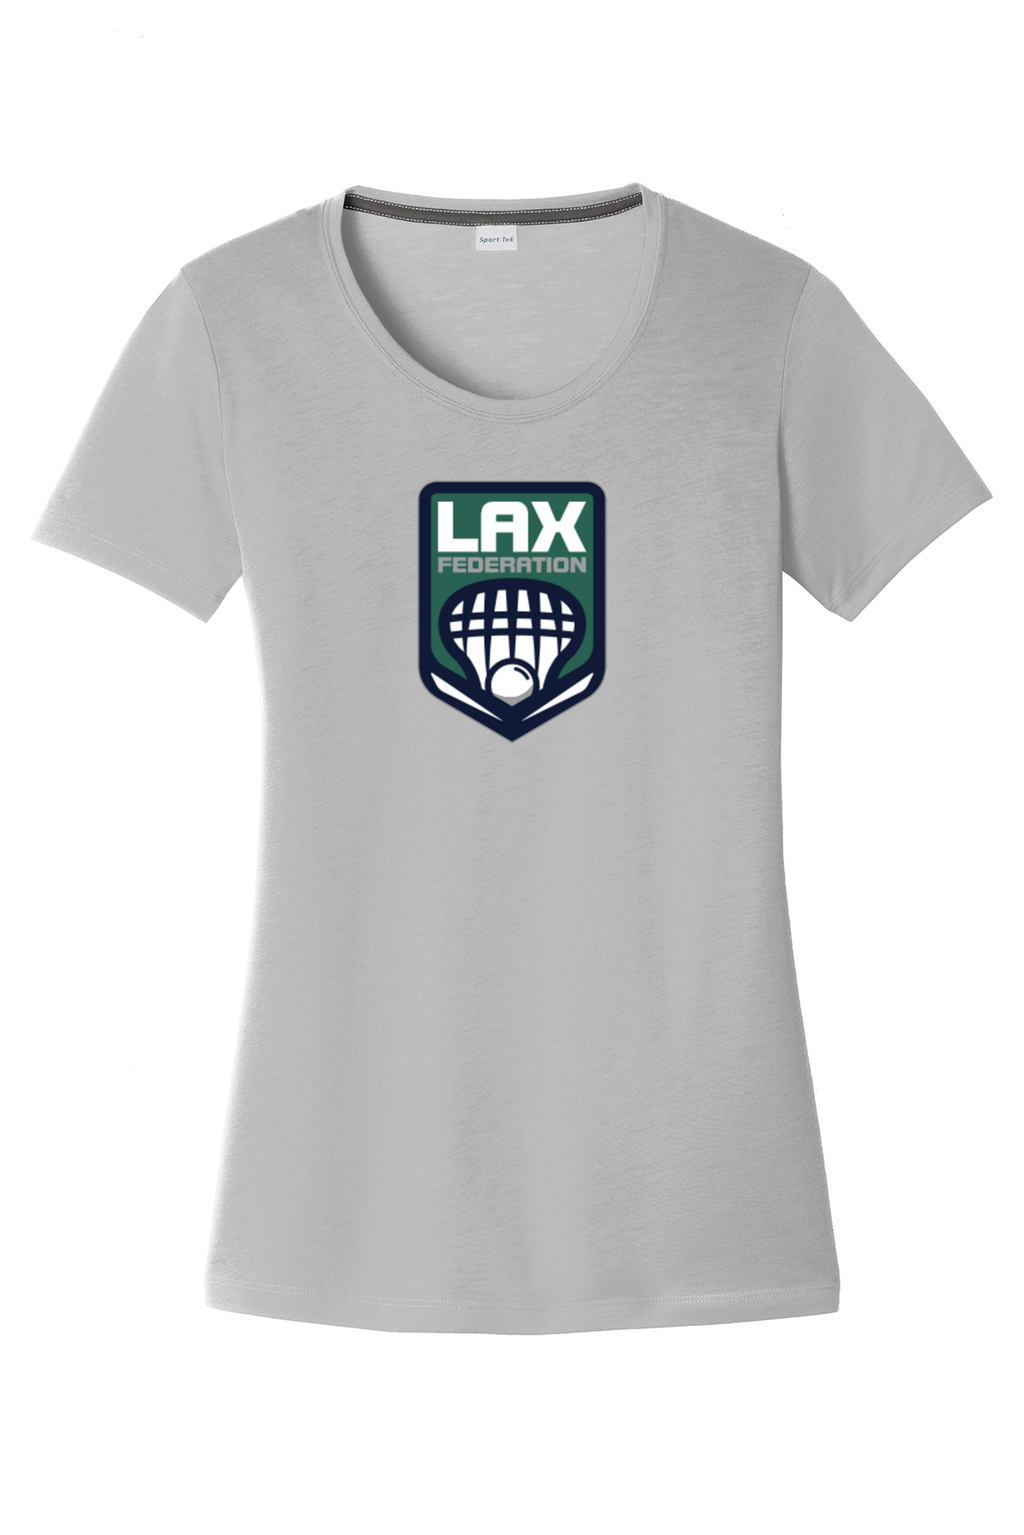 LAX FED Women's CottonTouch Performance T-Shirt